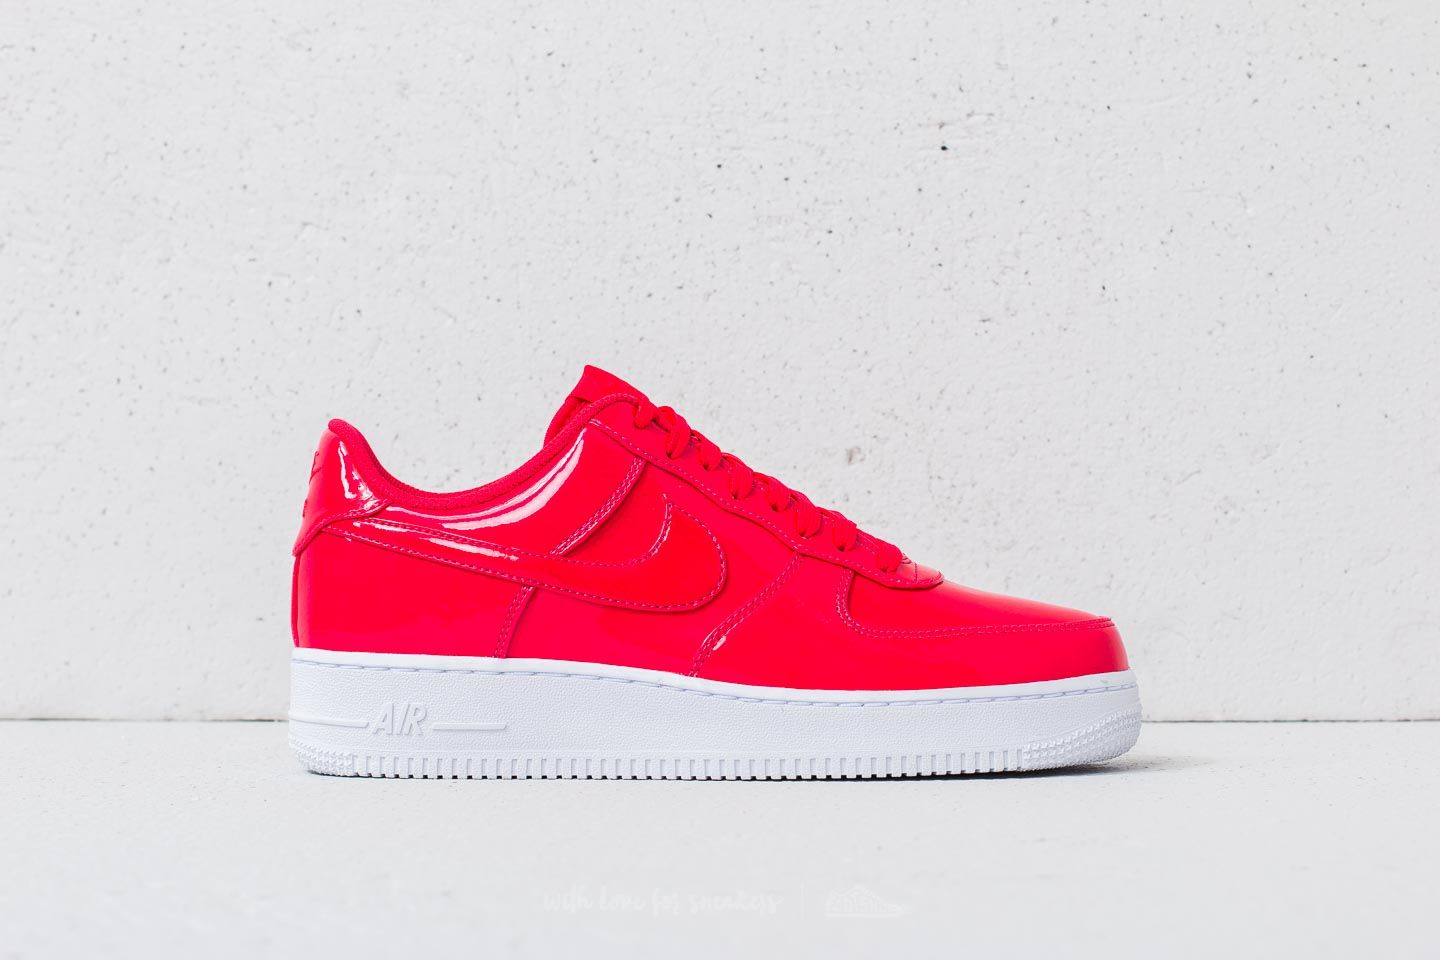 new style 7bac7 de9c2 Nike Air Force 1 07 LV8 UV Siren Red Siren Red-White at